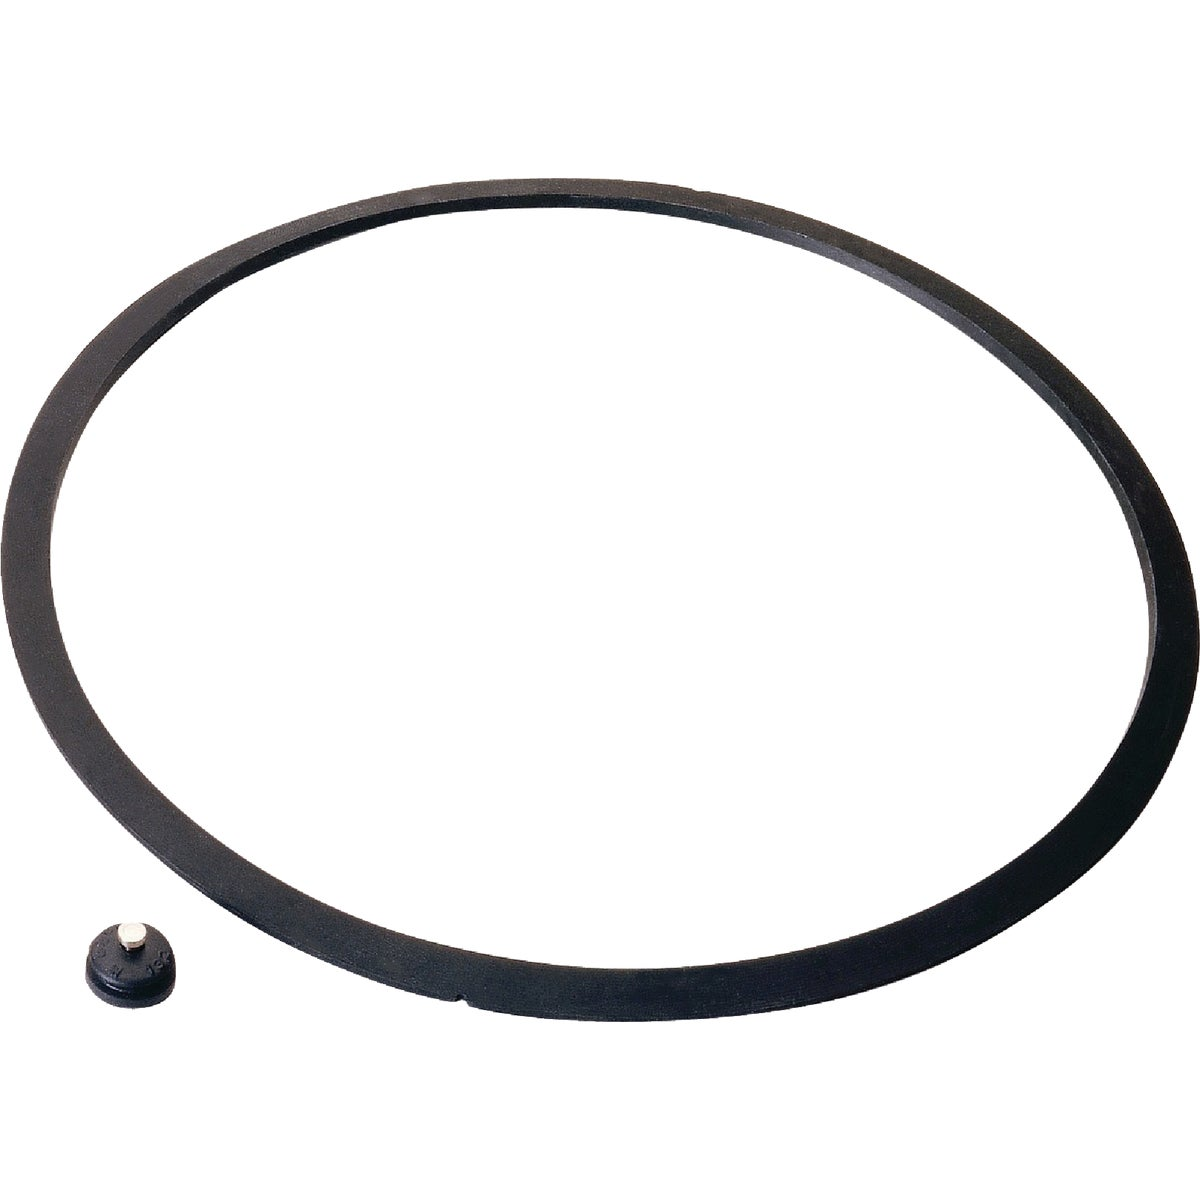 SEALING RING - 09909 by National Presto